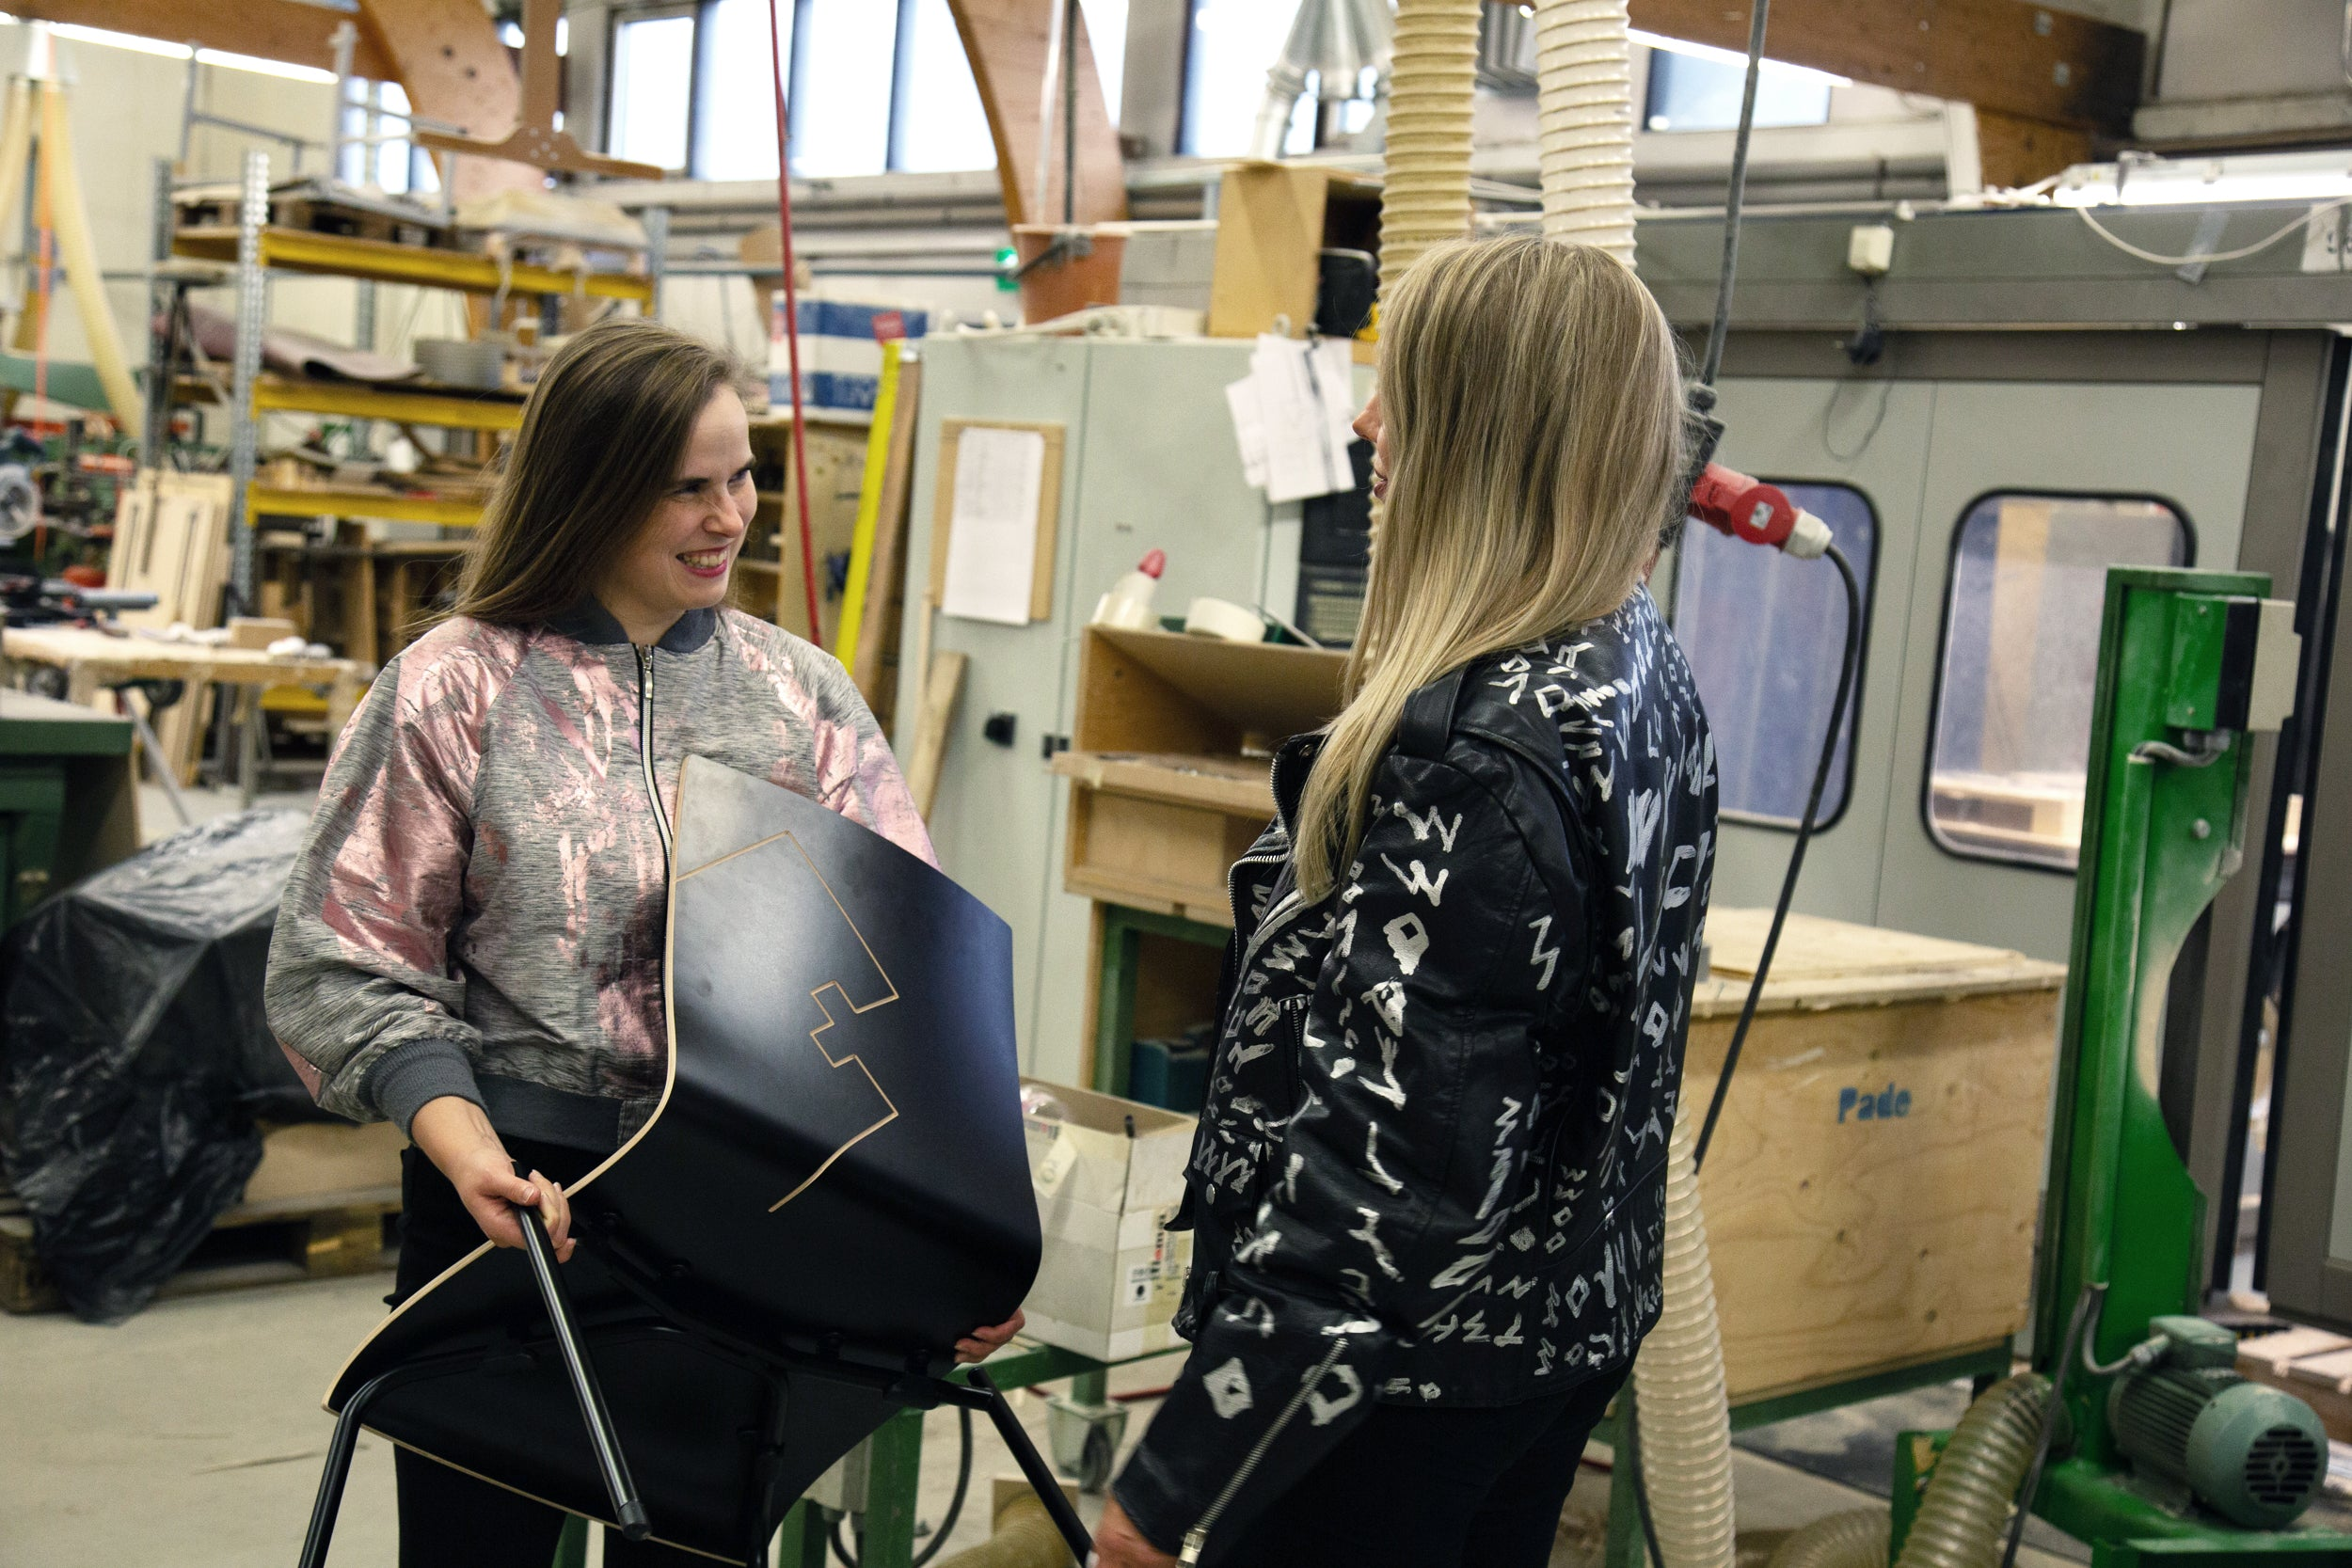 young finnish design offers design service for companies. we connect emerging designers from finland with companies. in the image young finnish designer kristoffer heikkinen ´s nuokku arm chair